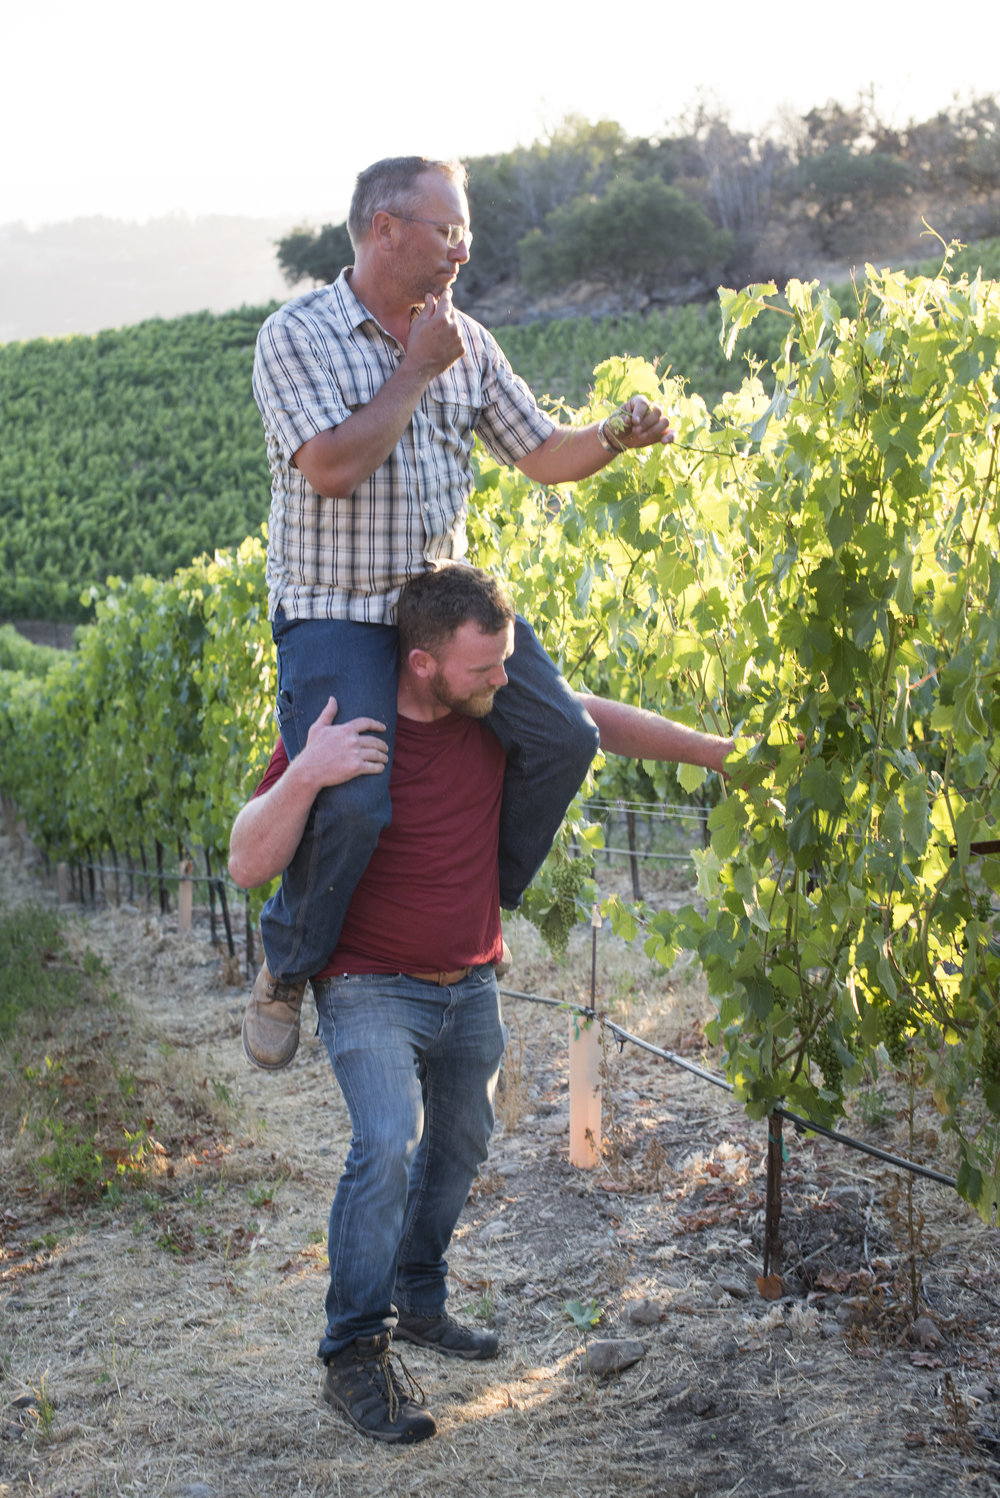 Winemaker Steven McCall lending a hand to vineyard manager Chris Bowland in the vineyard.